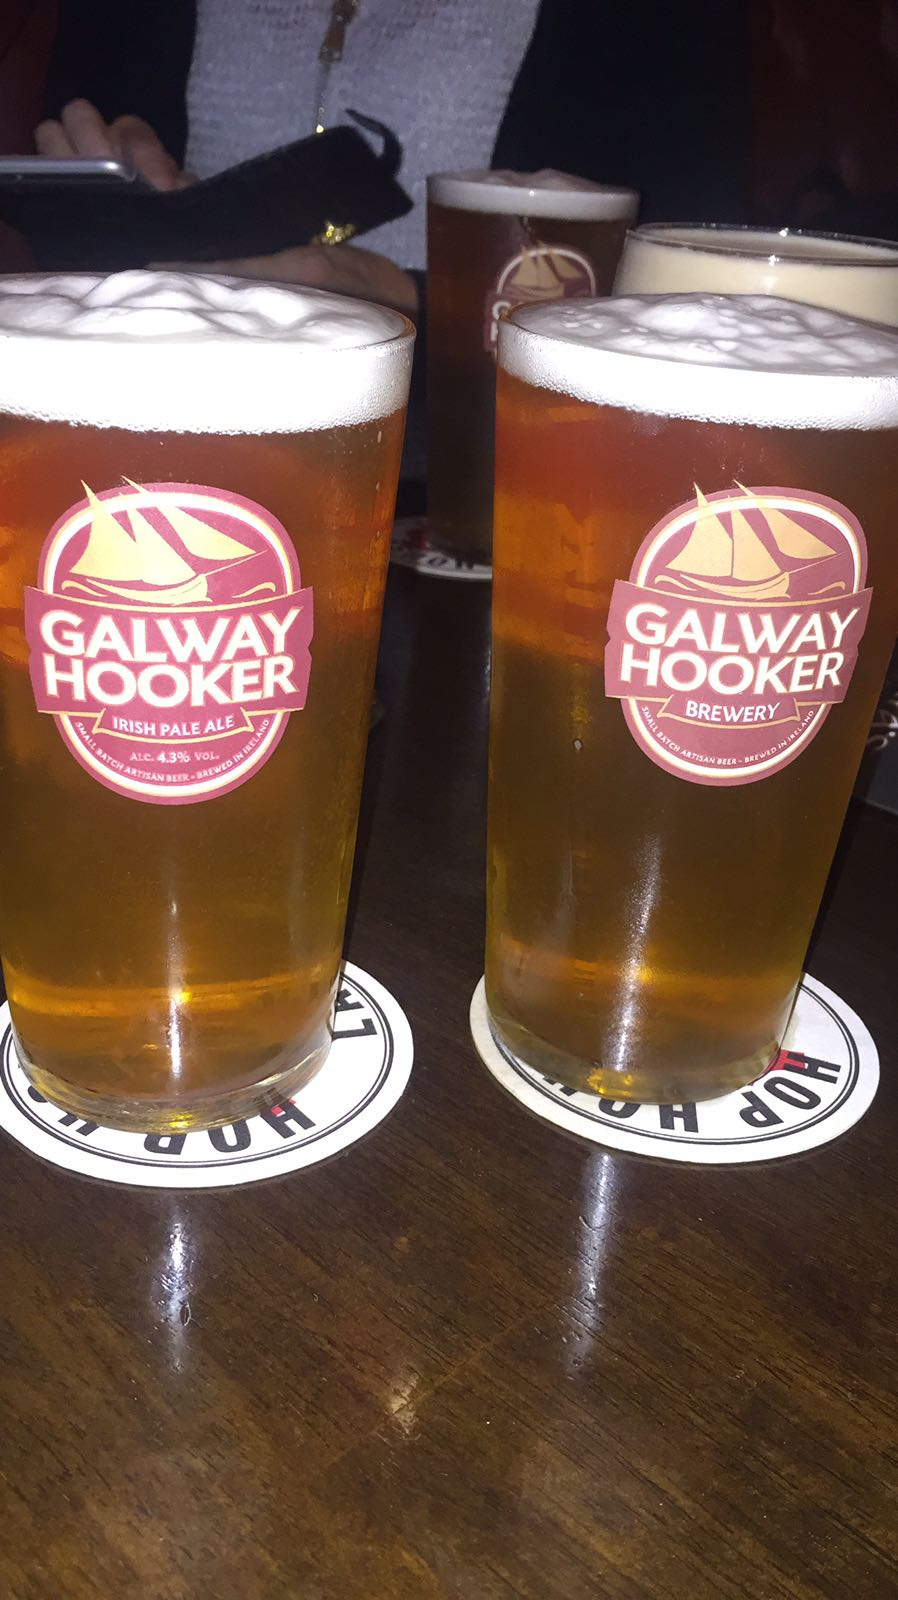 At the pub with a craft beer